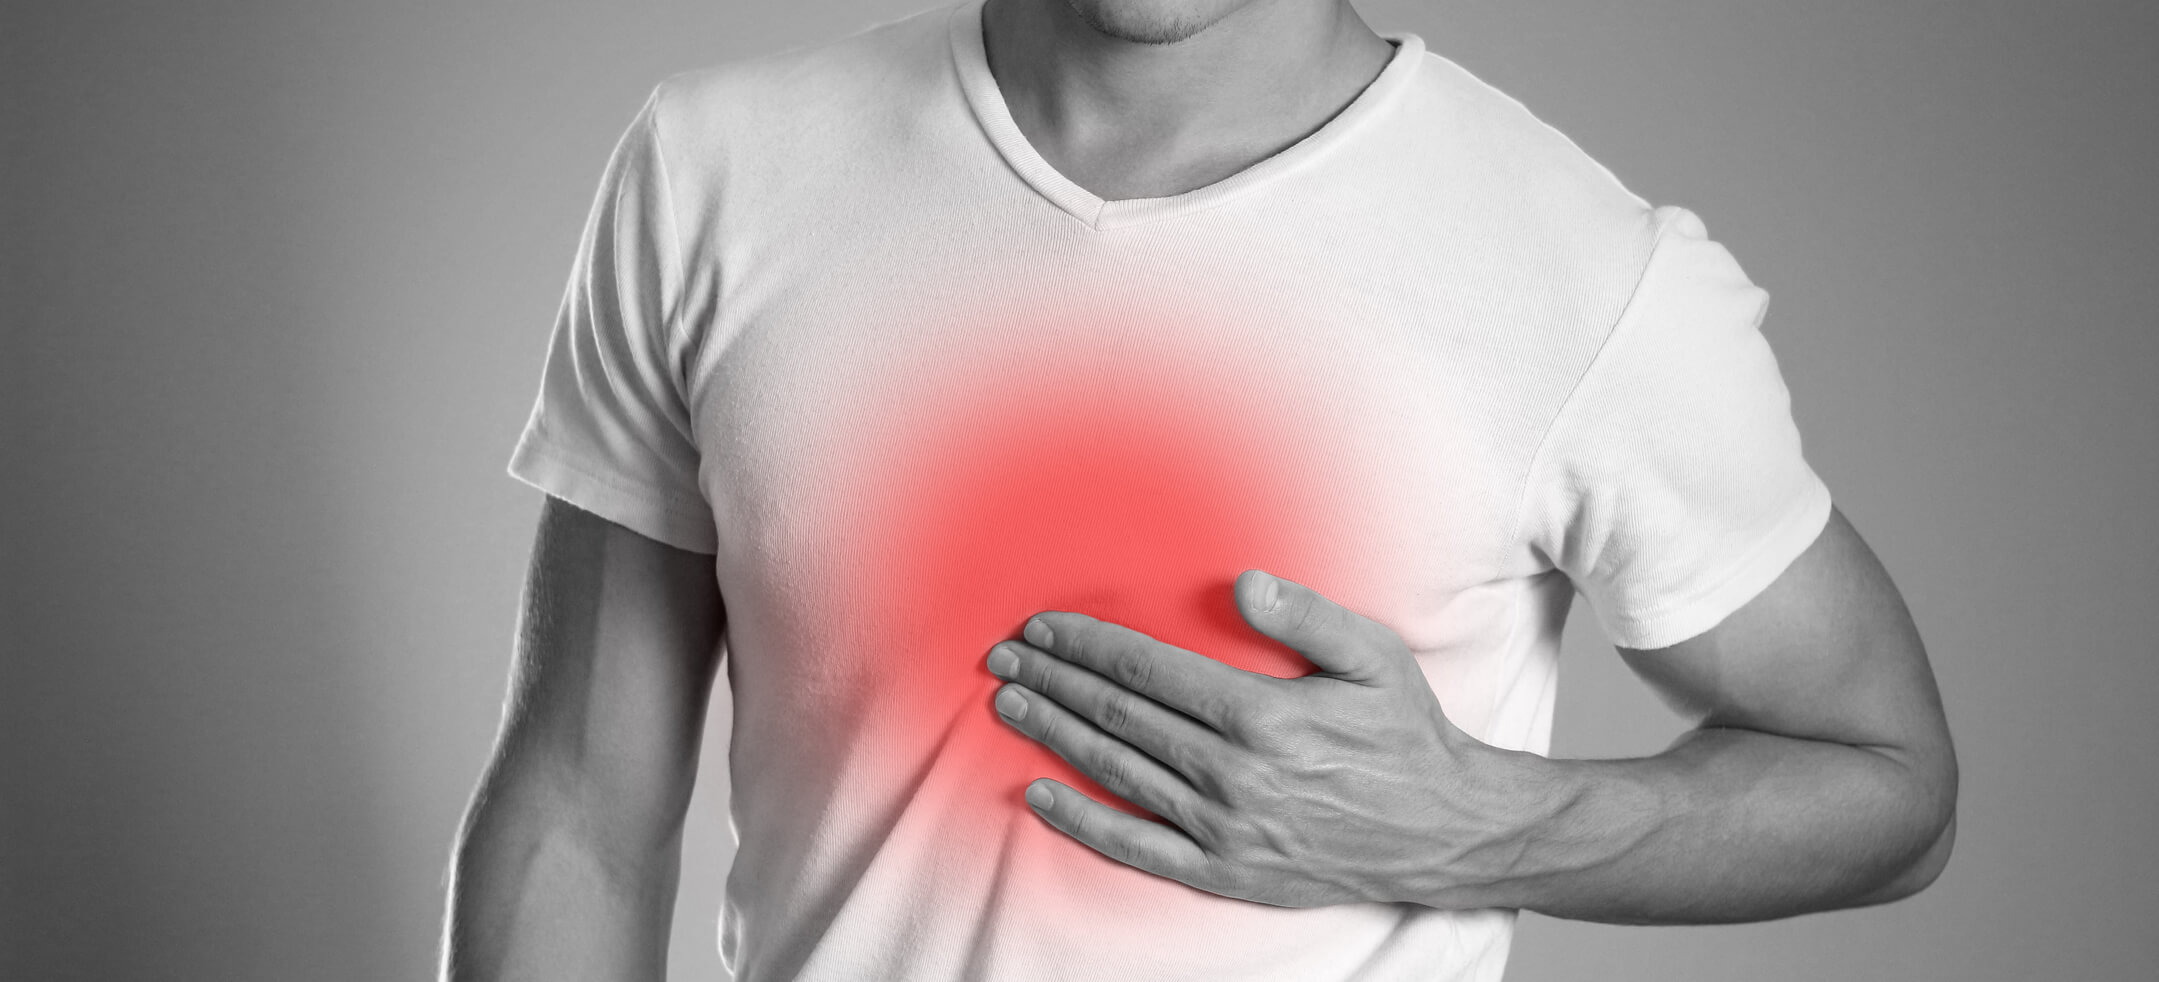 Stomach Acidity Ulcers and Reflux Heartburn Explained